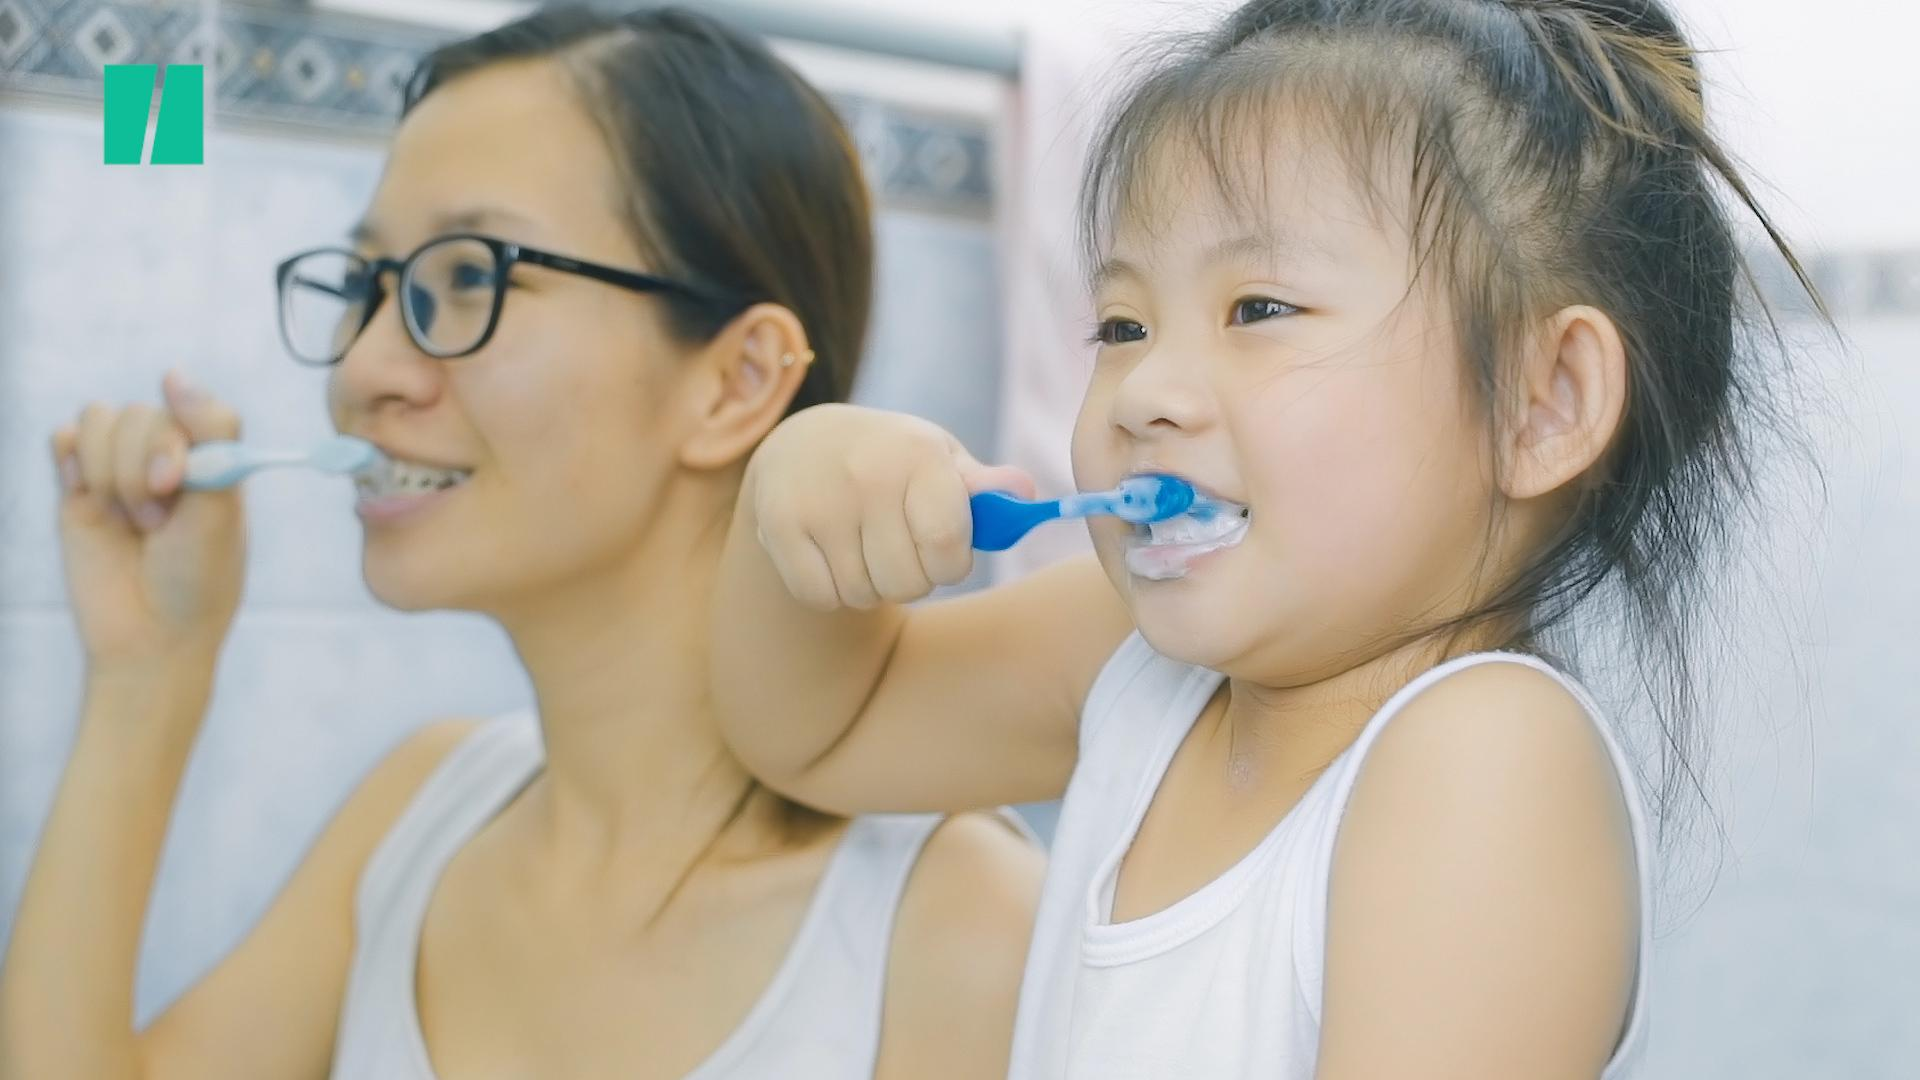 How To Prevent Children's Tooth Decay